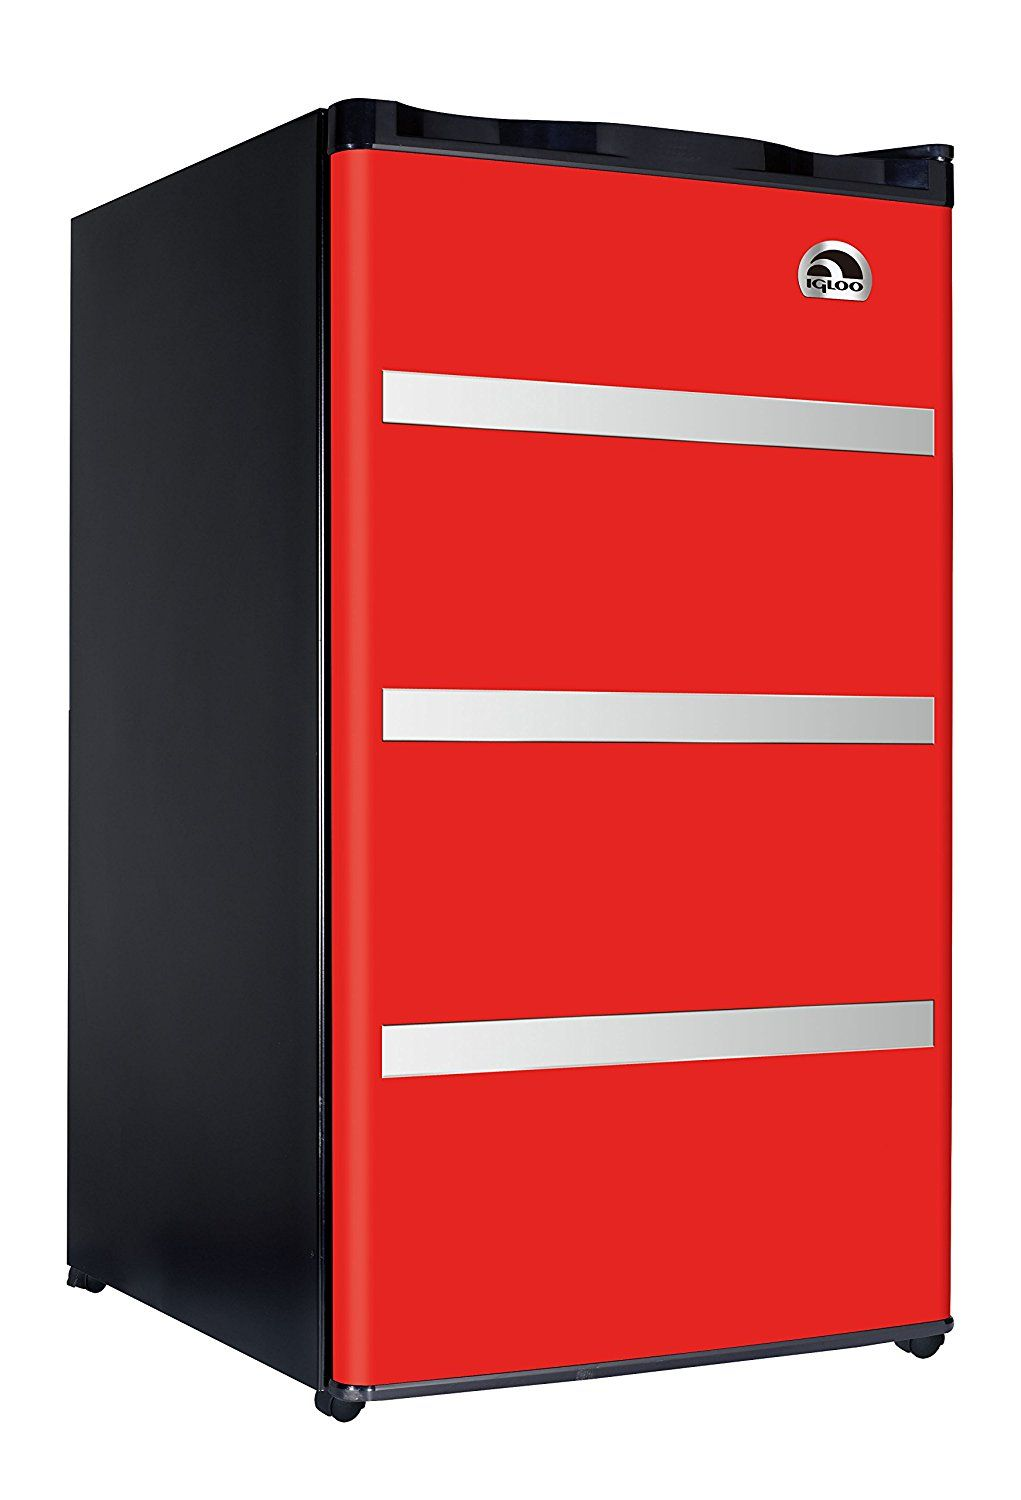 Igloo Fr329 Red Garage Fridge Tool Box 3 2 Cubic Feet Red You Can Get More De S By Clicking On The Image